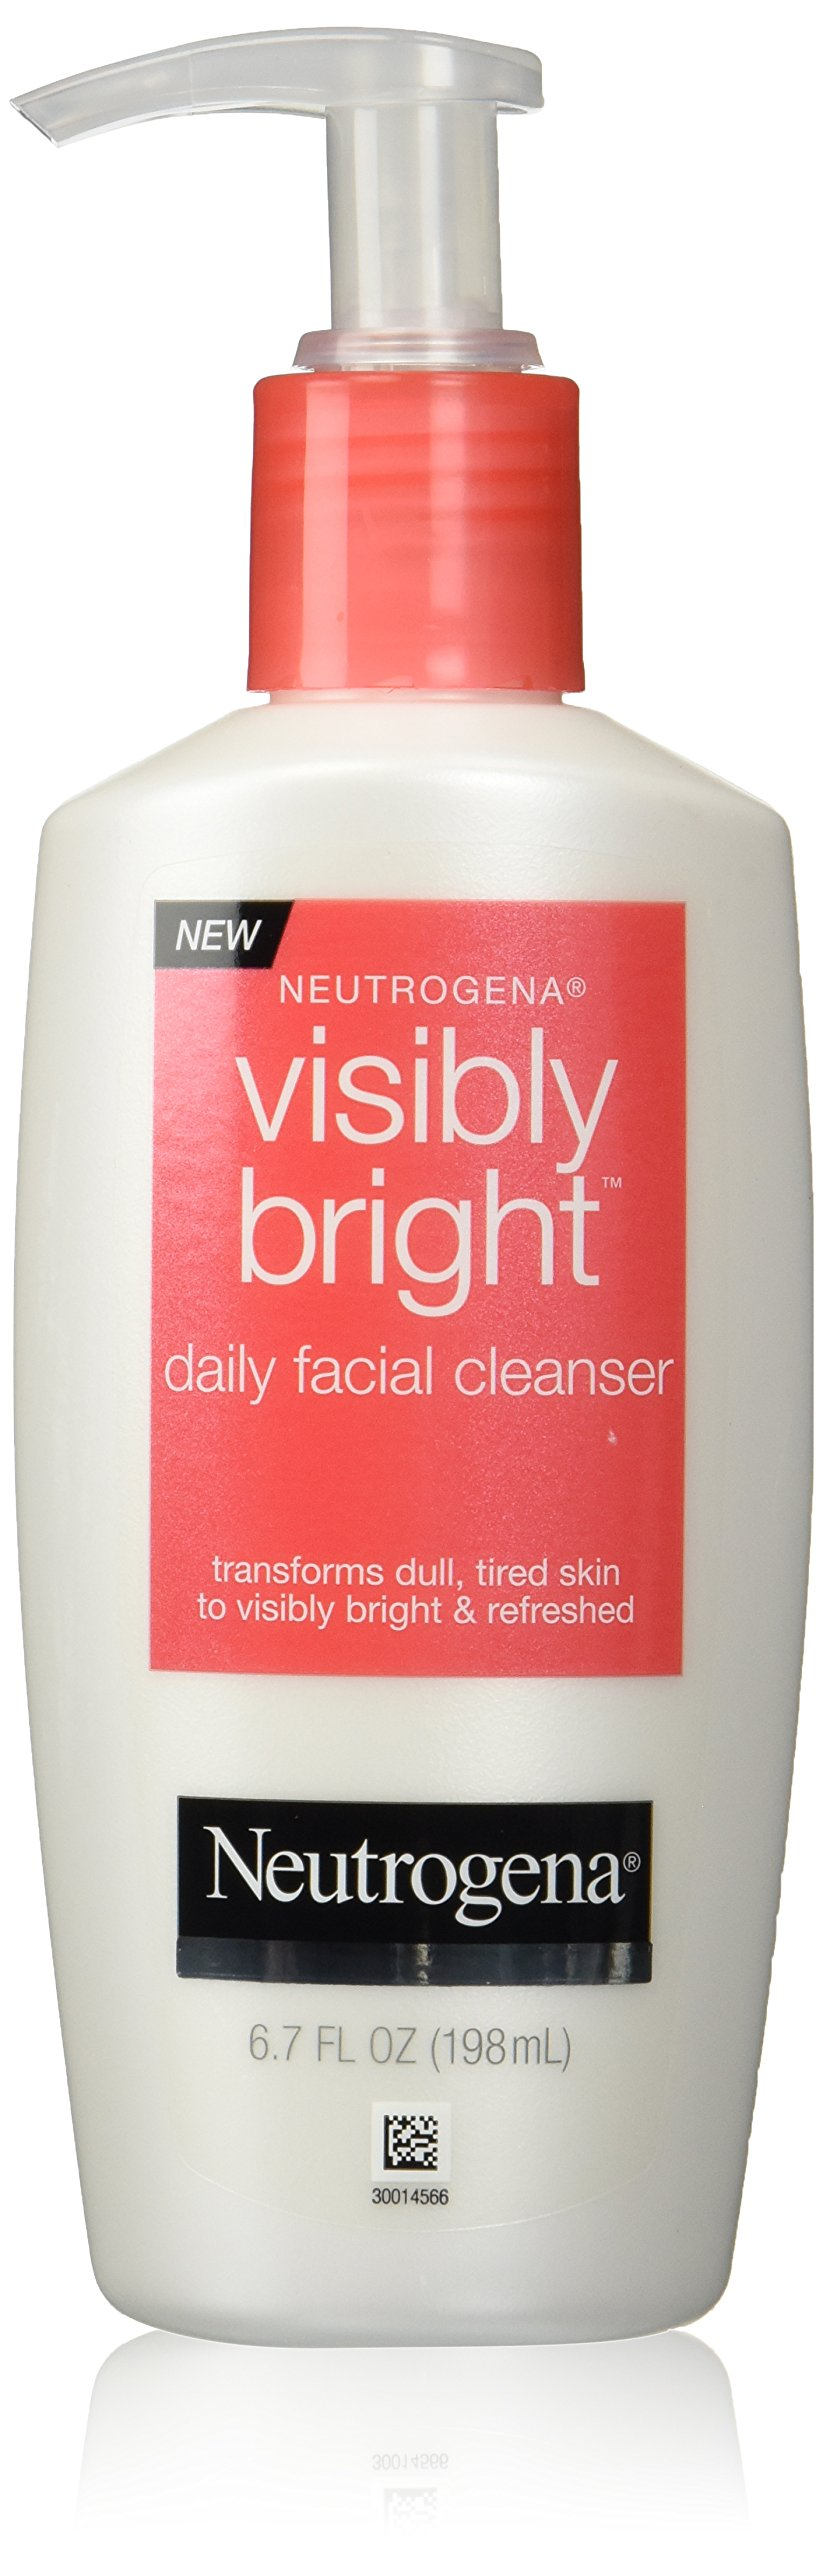 Neutrogena Visibly Bright Facial Cleanser6.7 oz